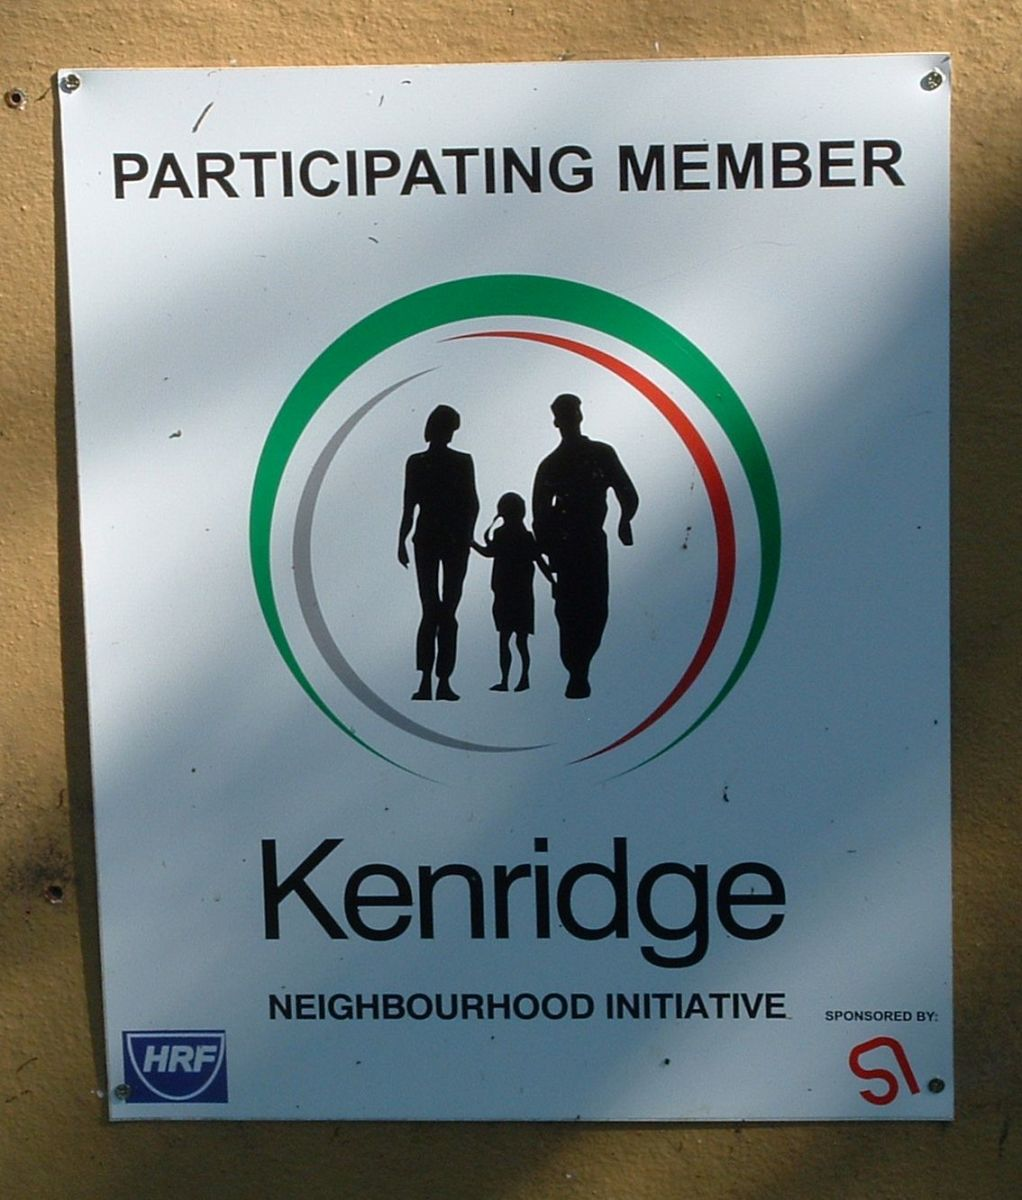 KNI sign. It stands for Kenridge Neighbourhood Initiative.